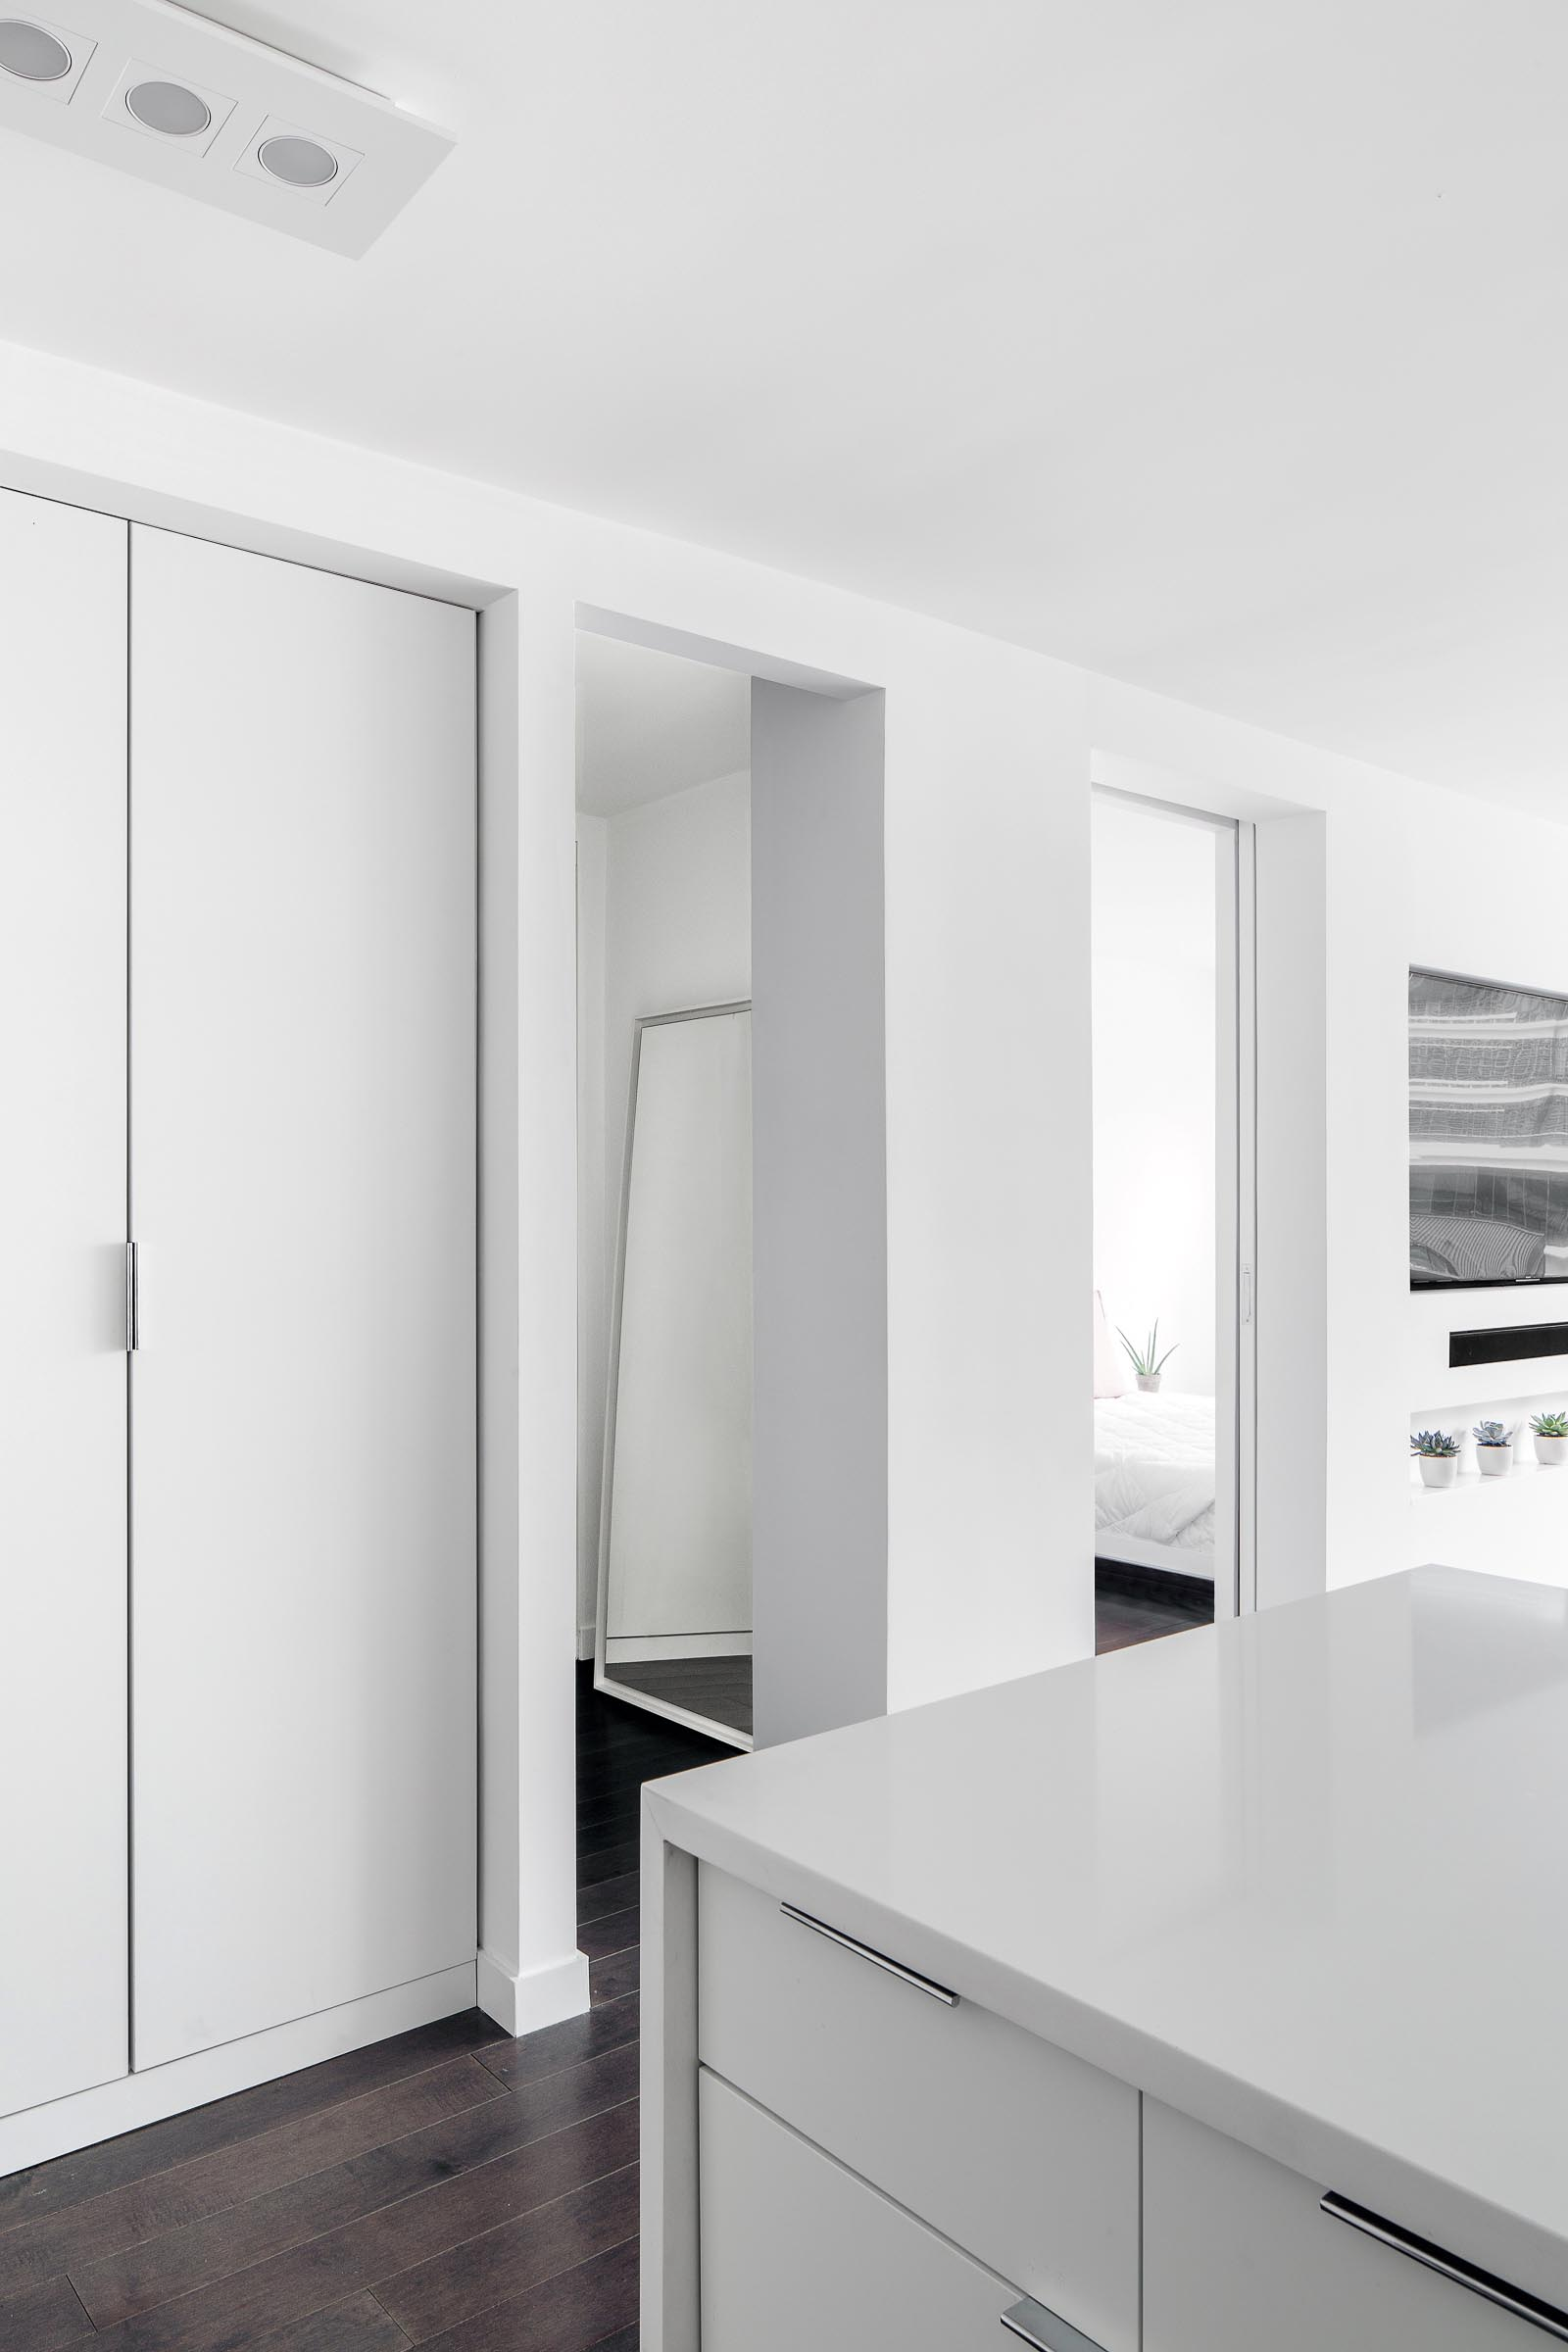 A small apartment with a white interior and dark wood floors.